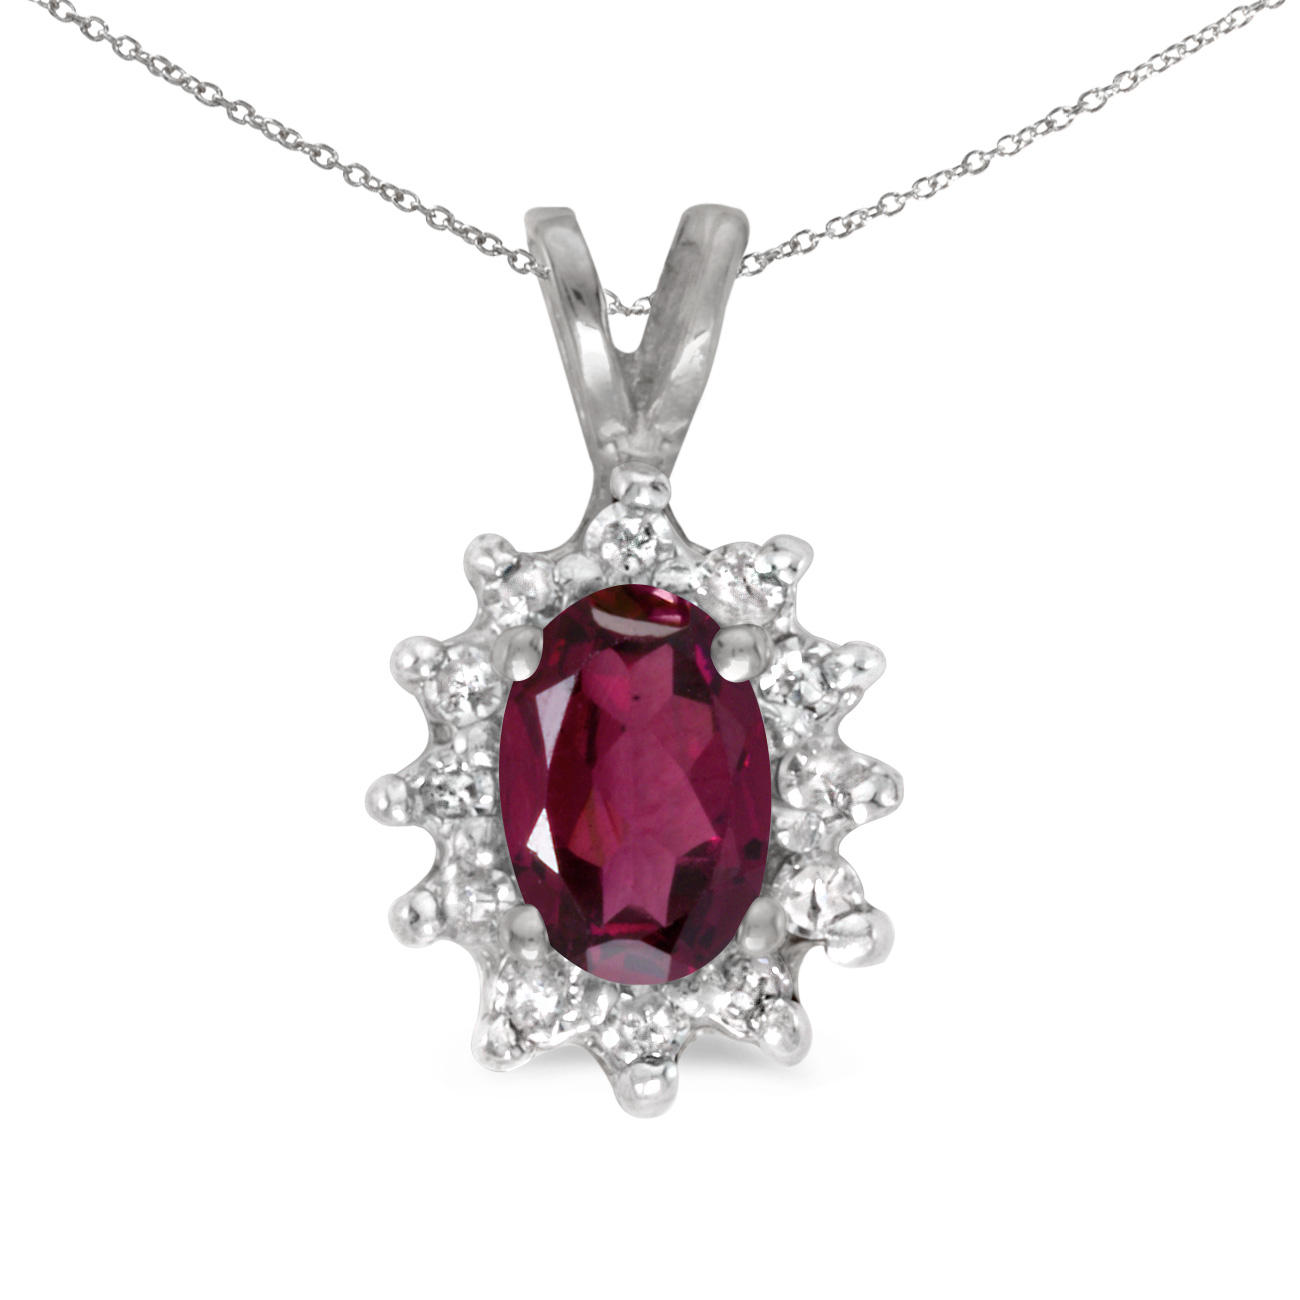 This 14k white gold oval rhodolite garnet and diamond pendant features a 6x4 mm genuine natural r...